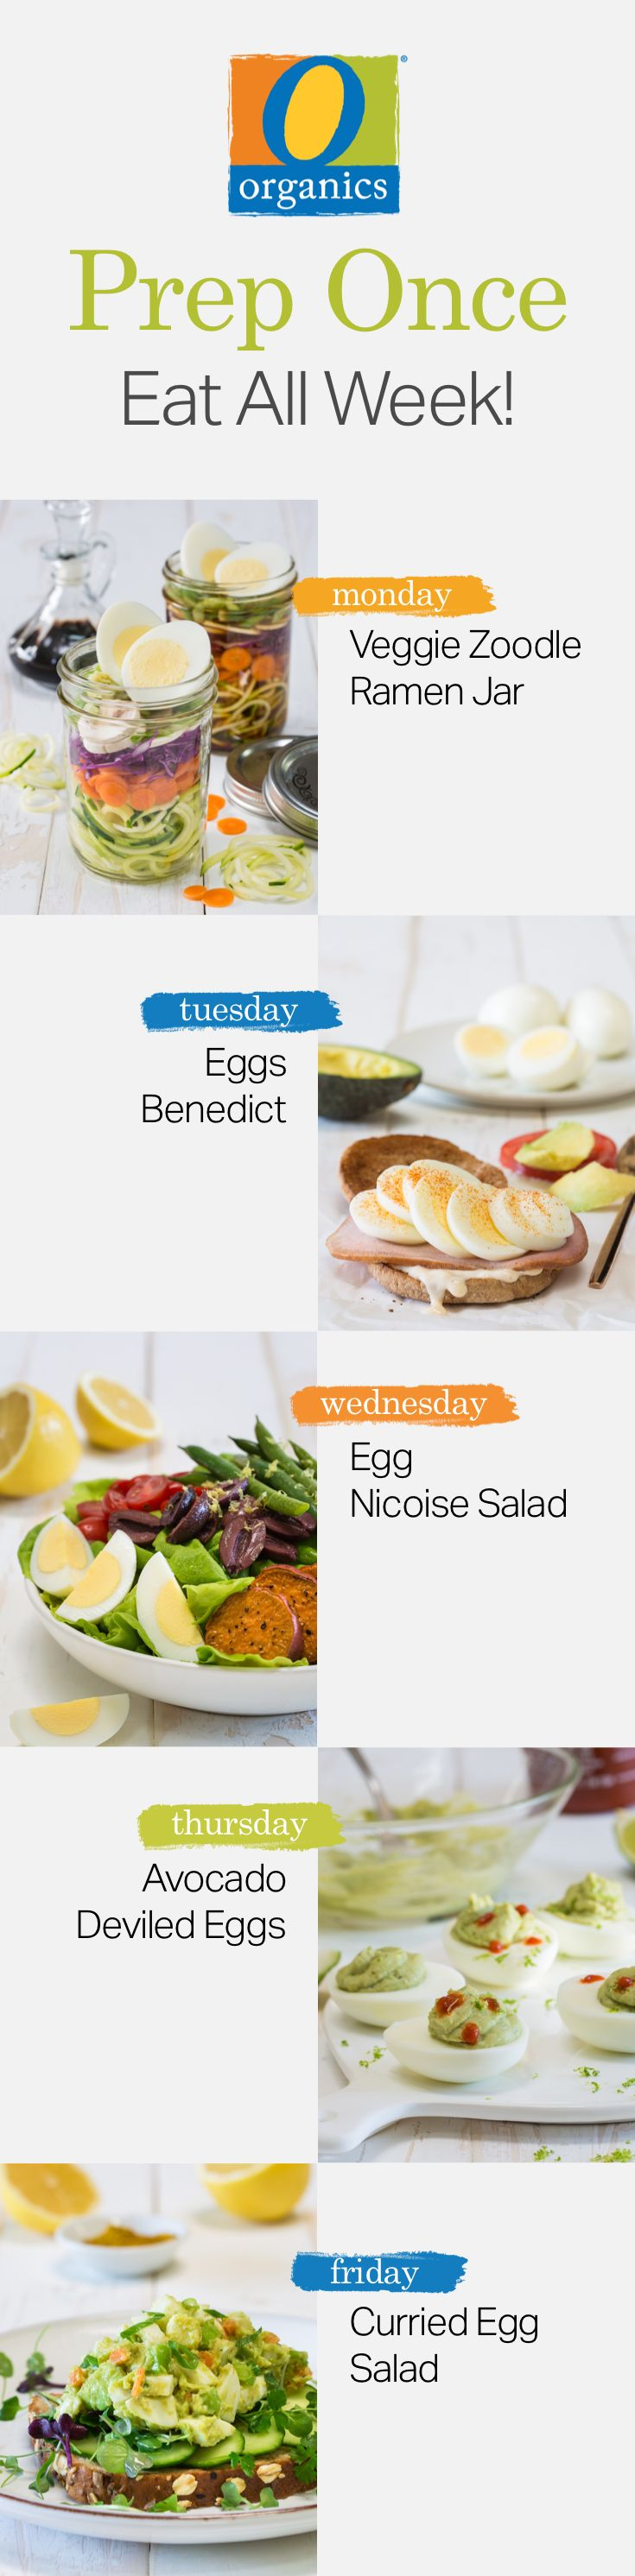 Make your New Years goals a reality by meal prepping O Organics® eggs and enjoy these five healthy recipes all week long!